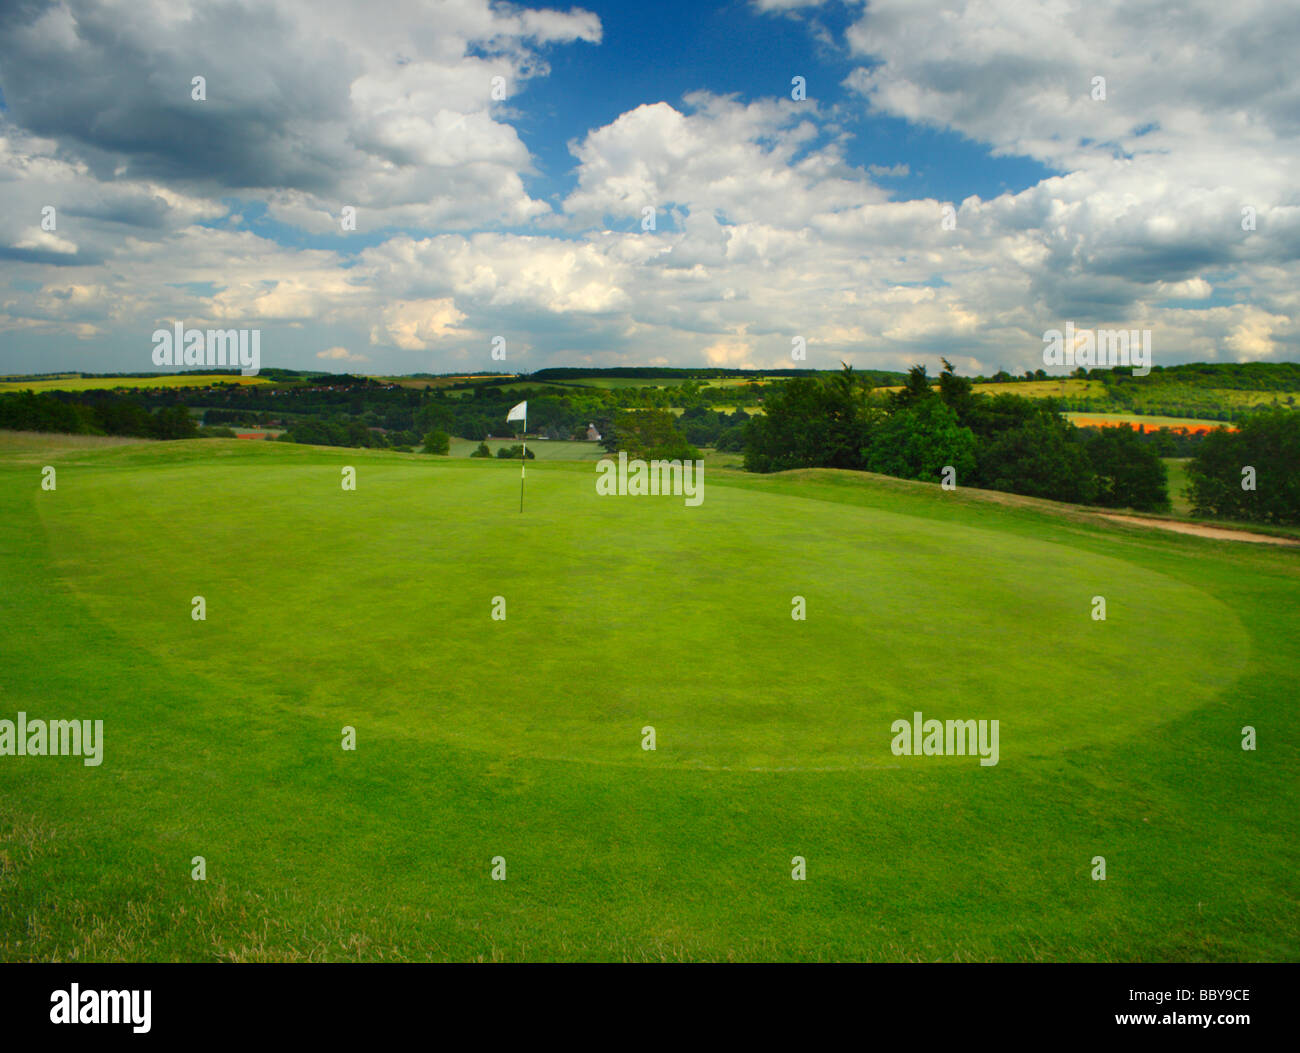 Golf green. Lullingstone golf course, Darenth Valley, Kent, England, UK. - Stock Image